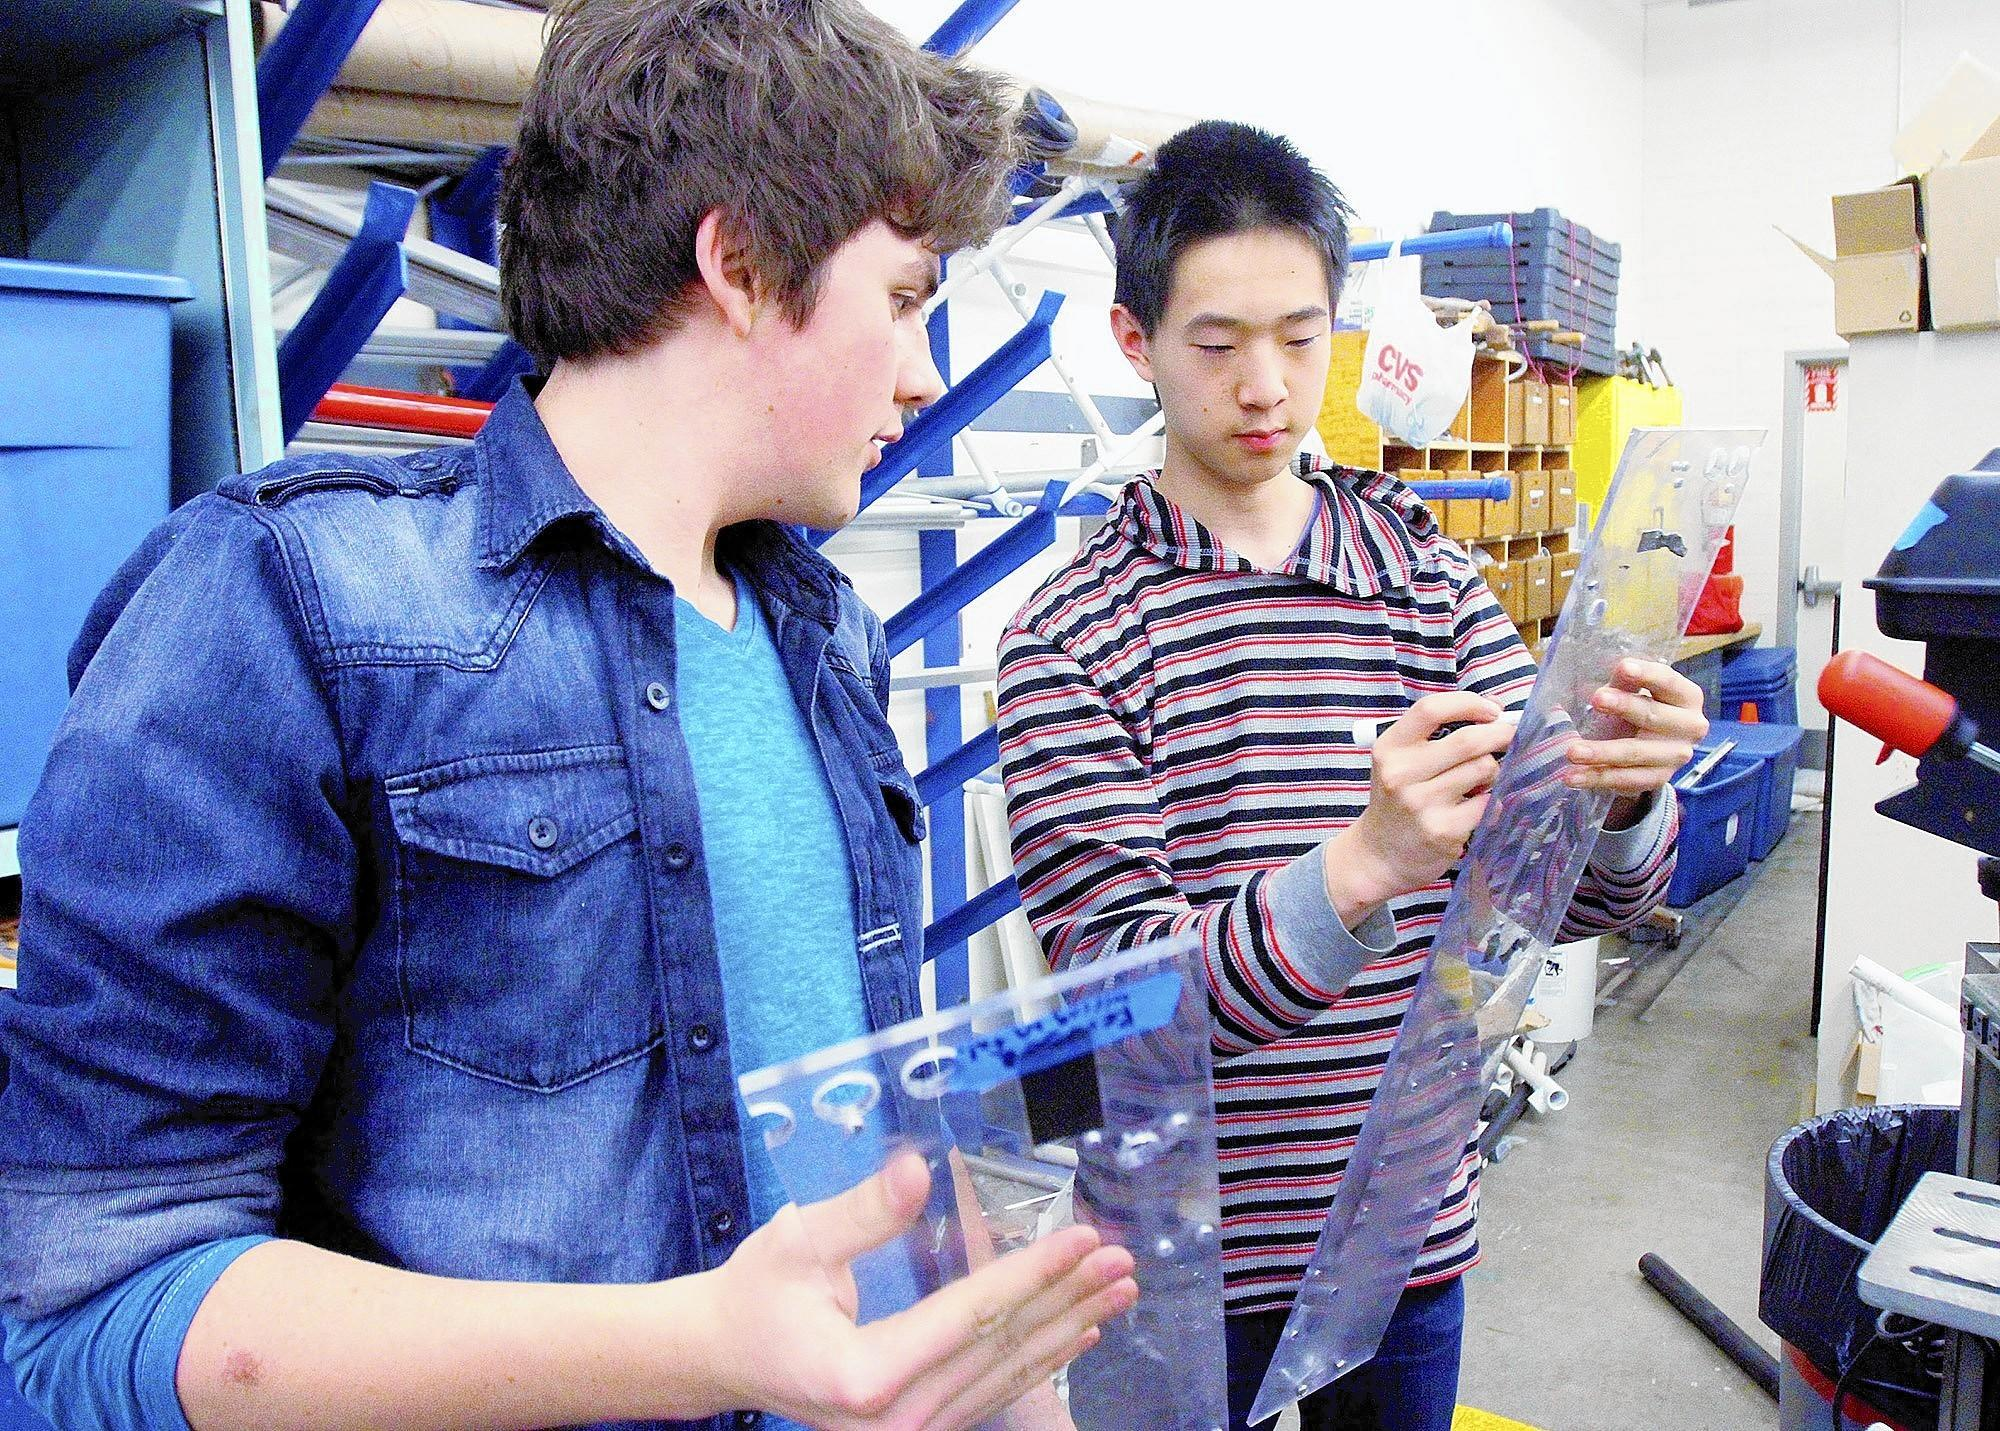 Alex McComb, 16, and club president Philipp Wu, 16, prepare pieces of their backup robot for drilling on the drill press at La Cañada High School on Tuesday, March 11, 2014.